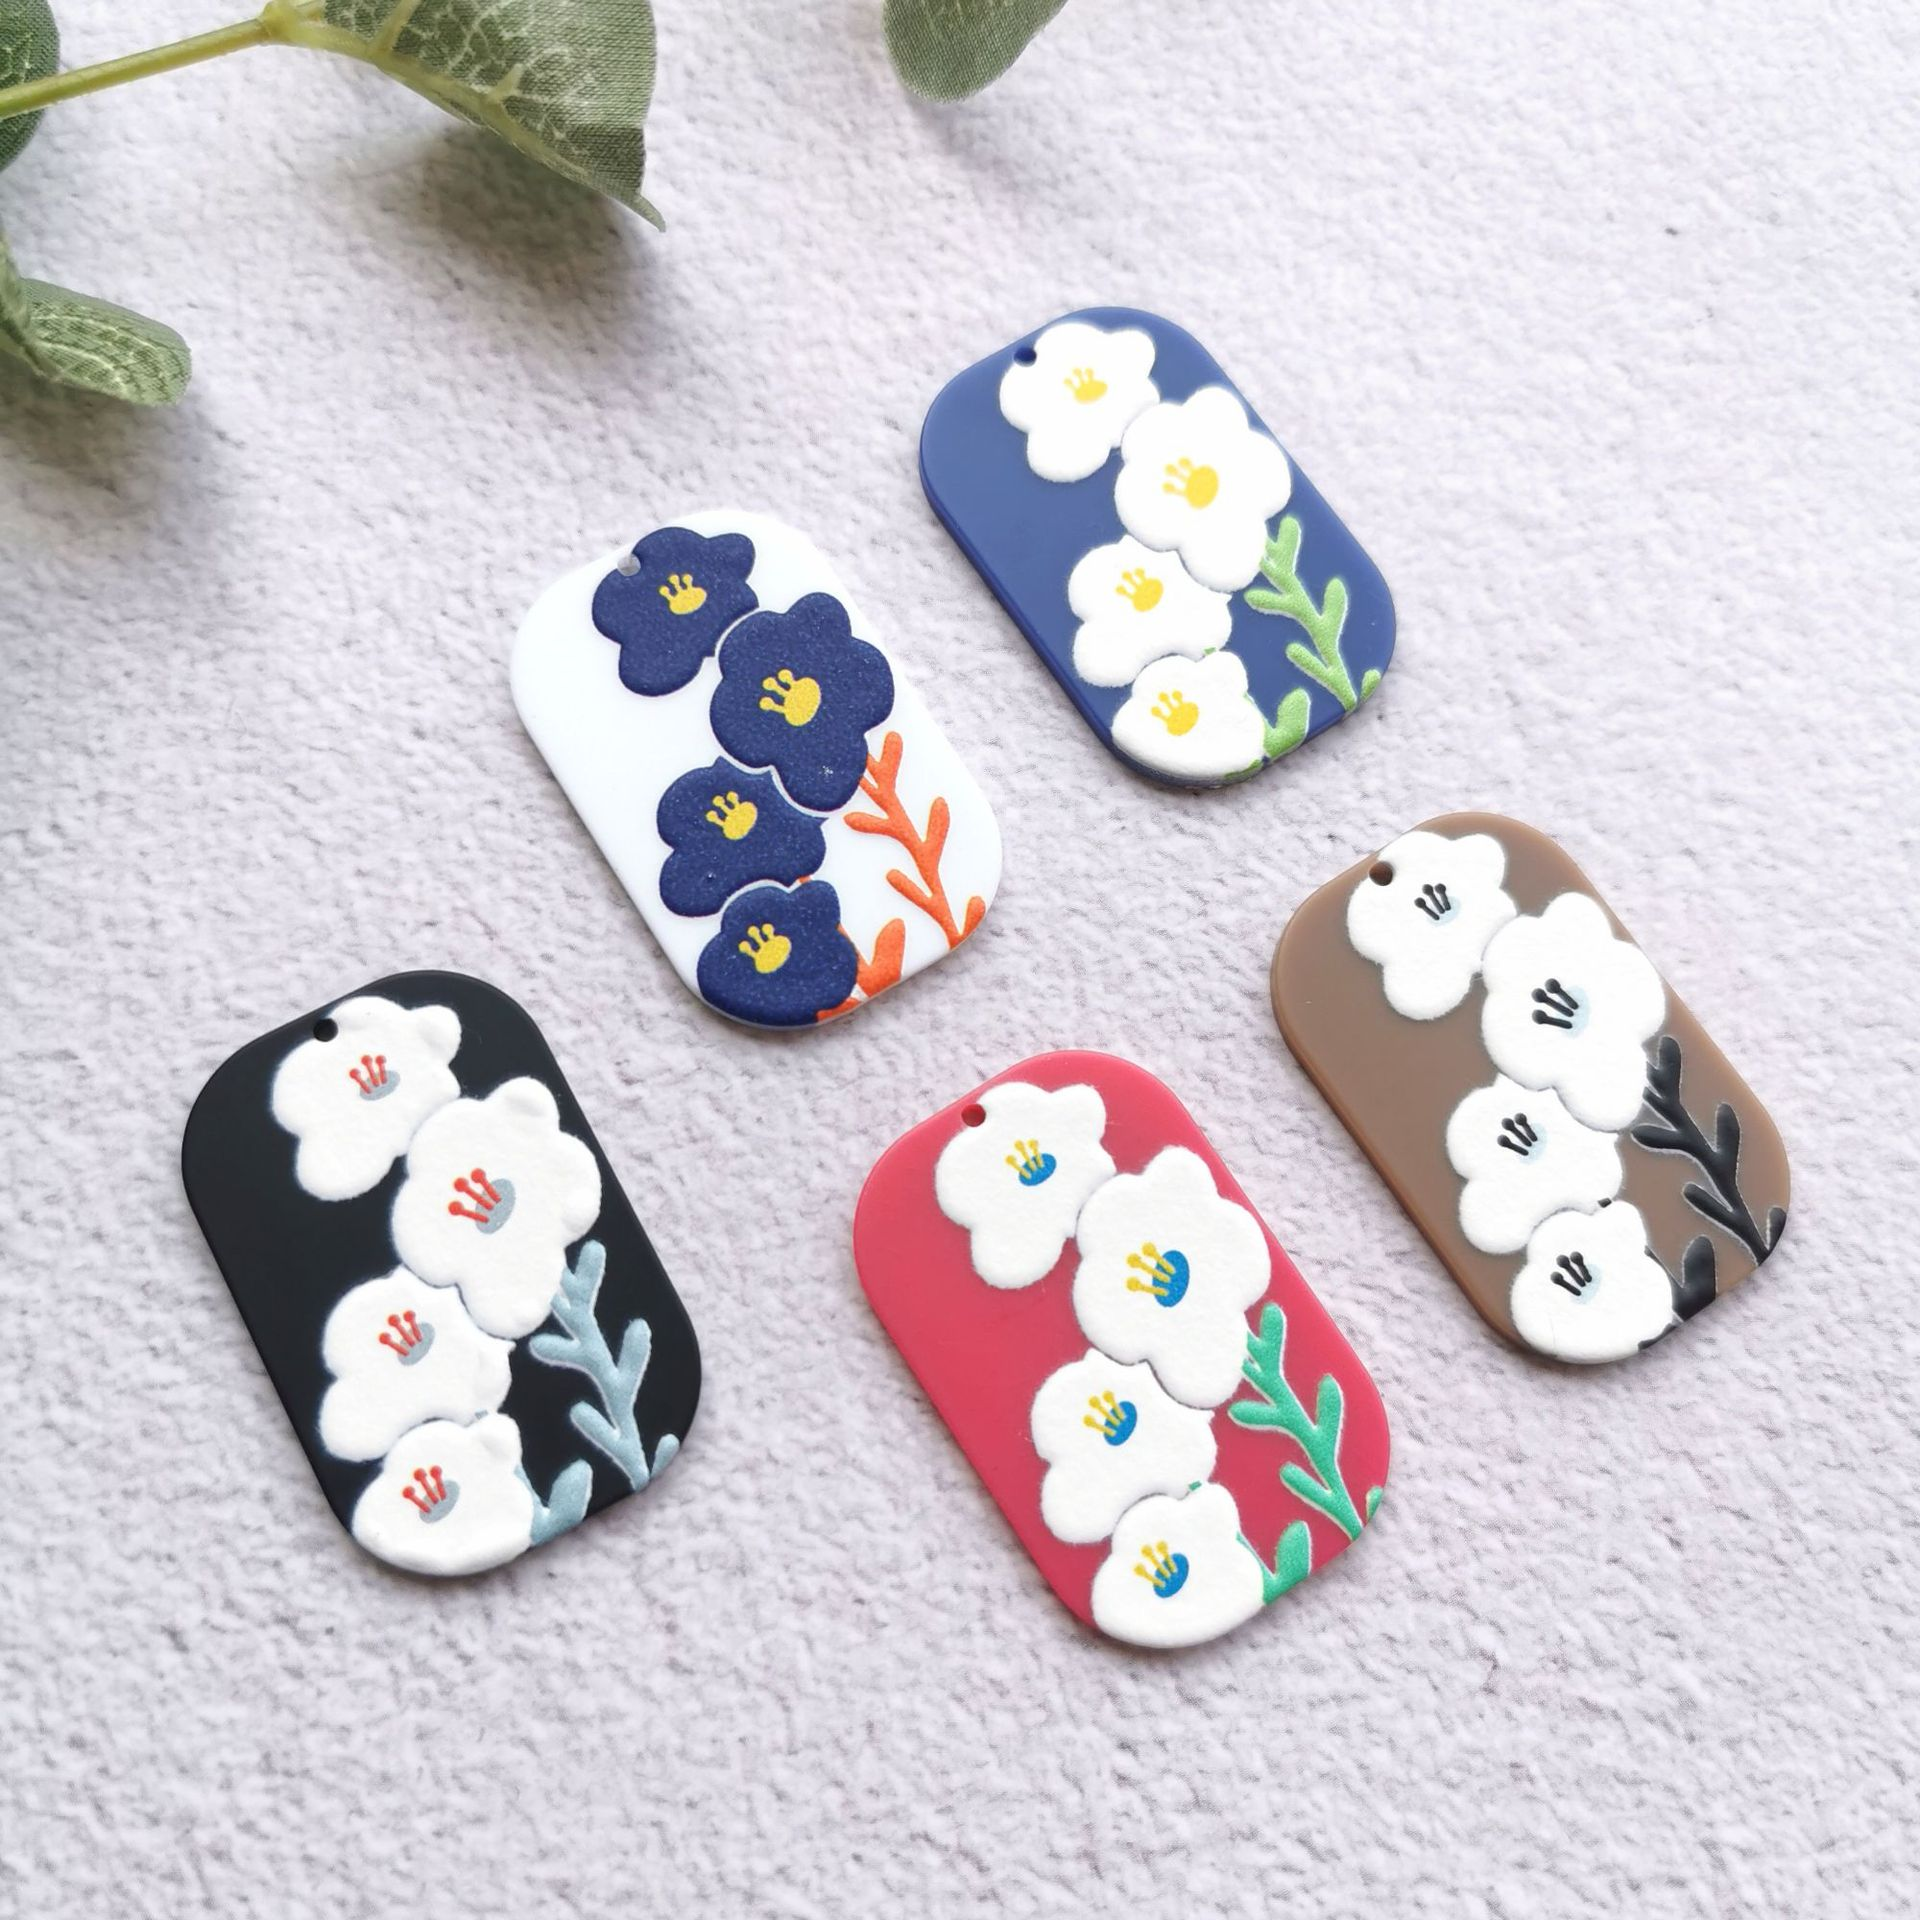 50PCS Van Gogh Painting Flowers Jewelry Accessories Hand Made Earrings Connectors DIY Pendant Jewelry Findings Components Charms